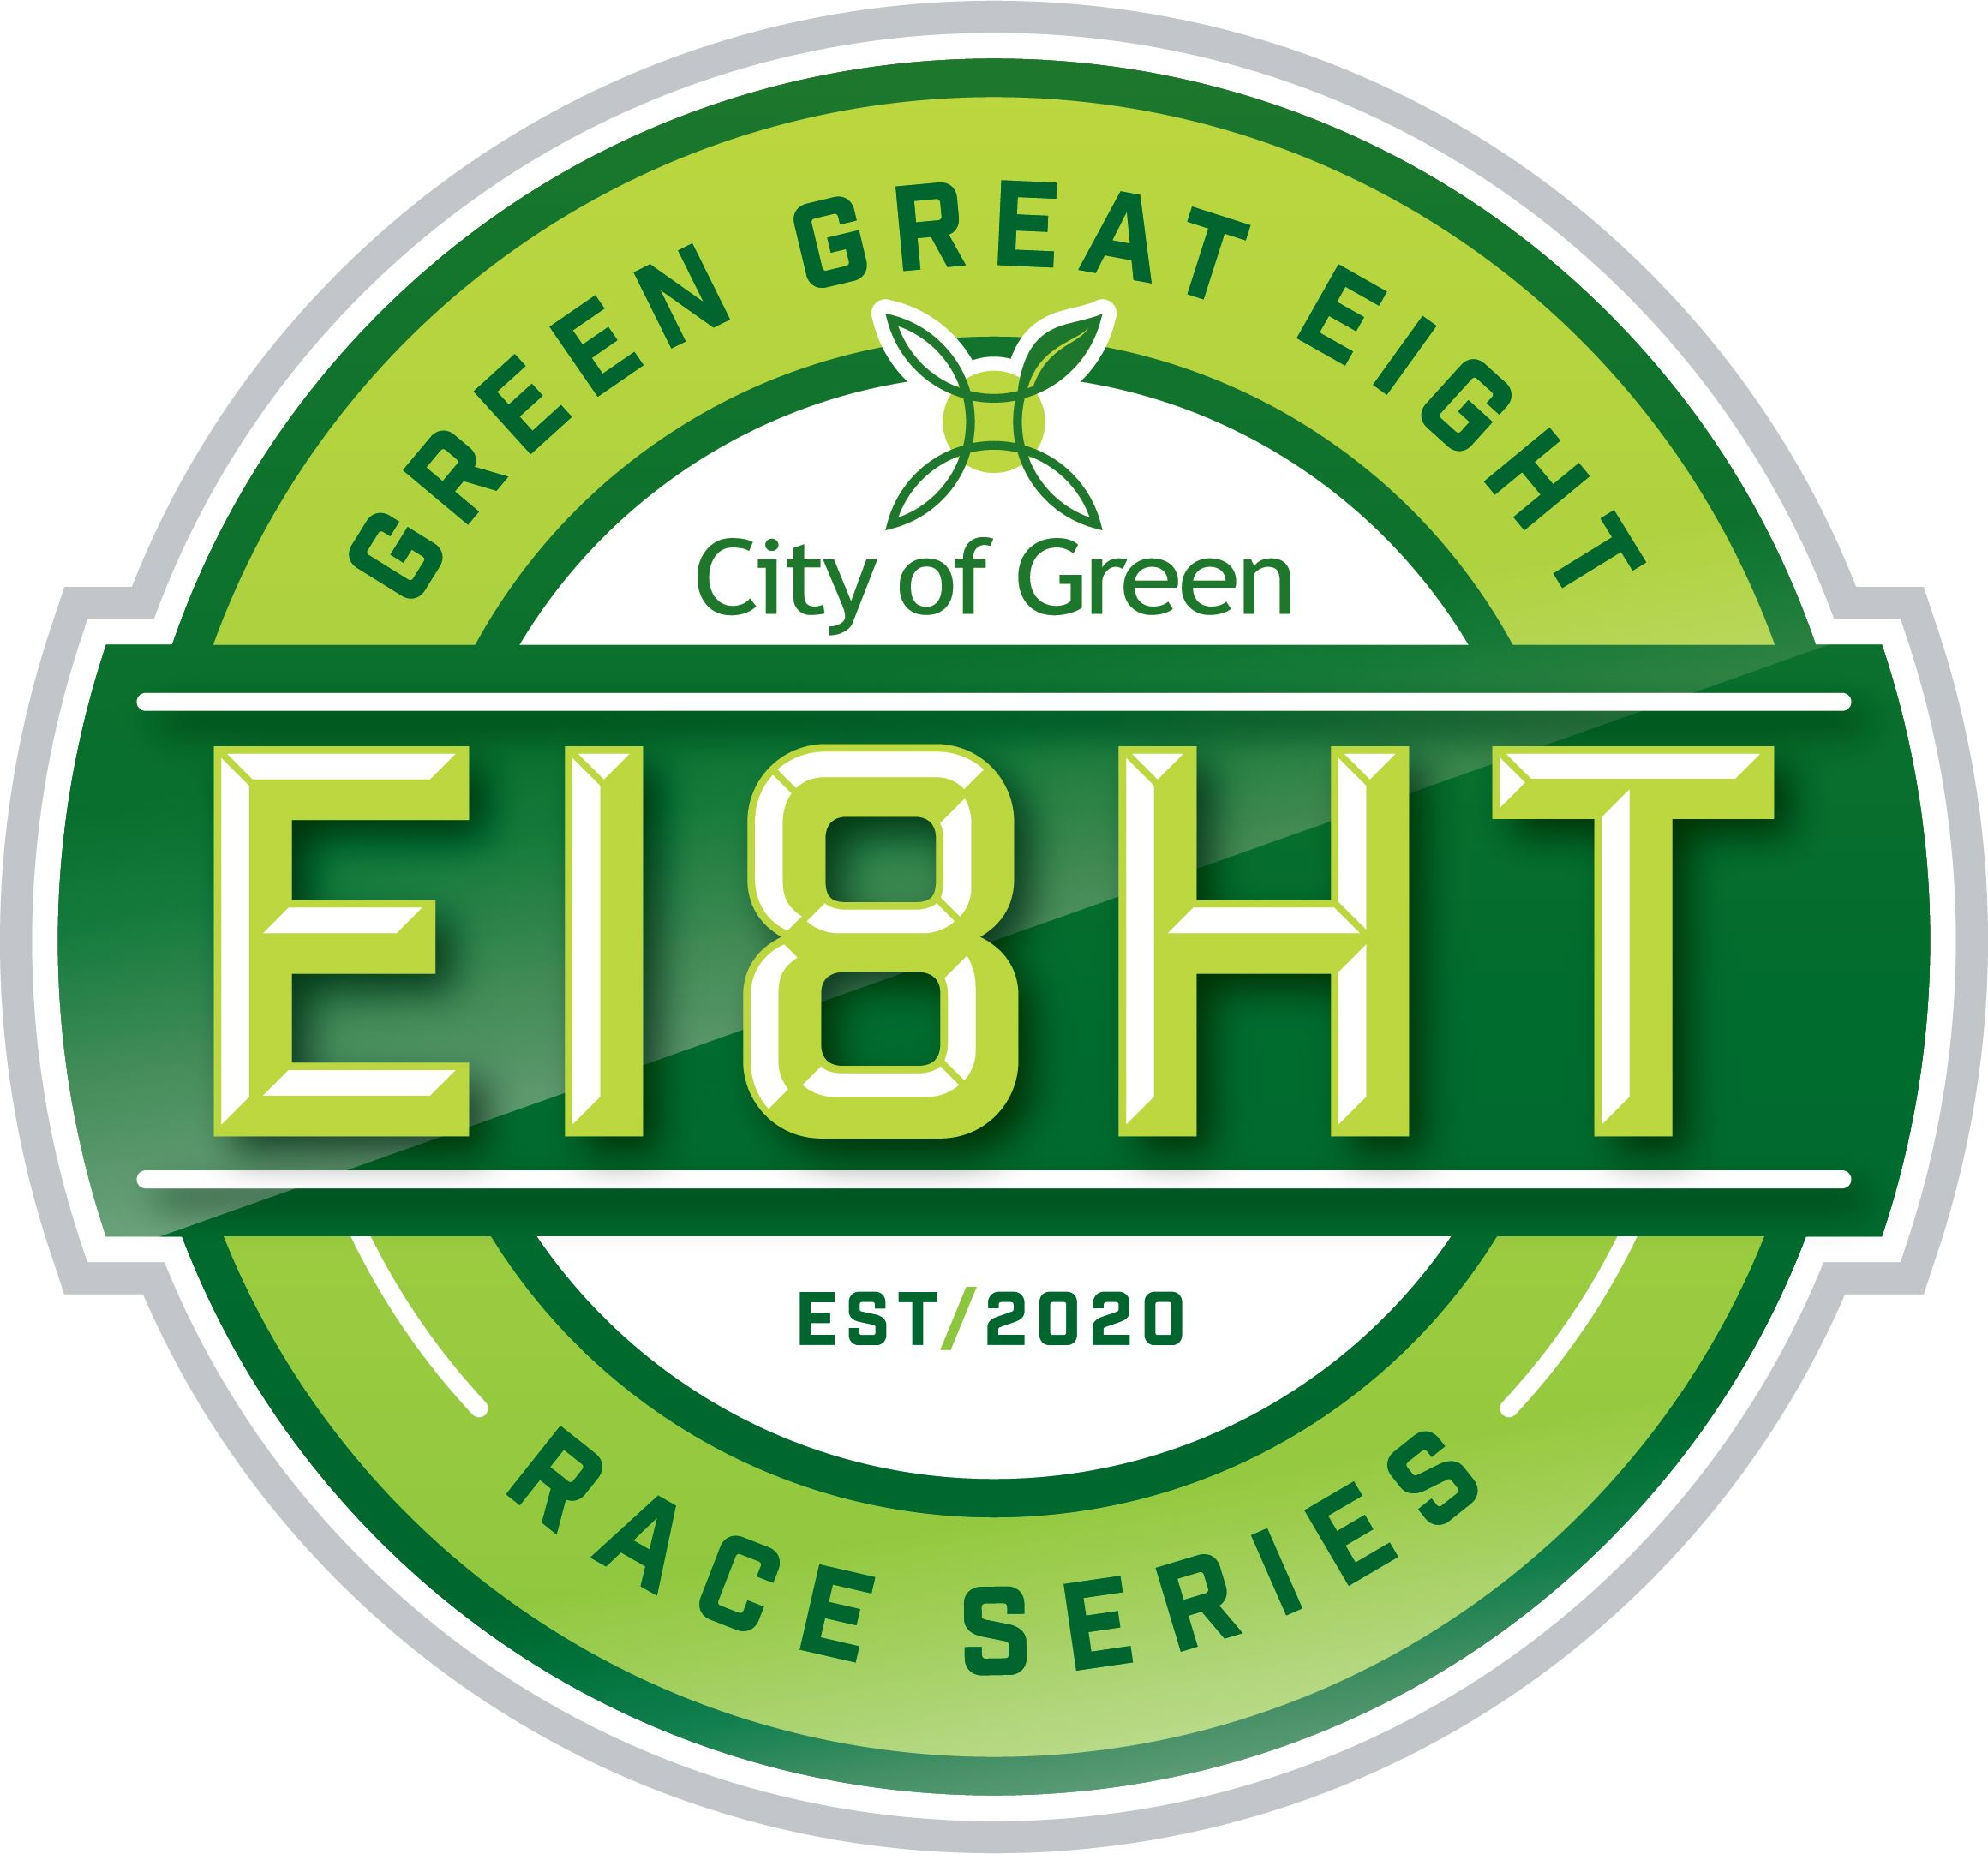 Green Great Eight Race Series Logo